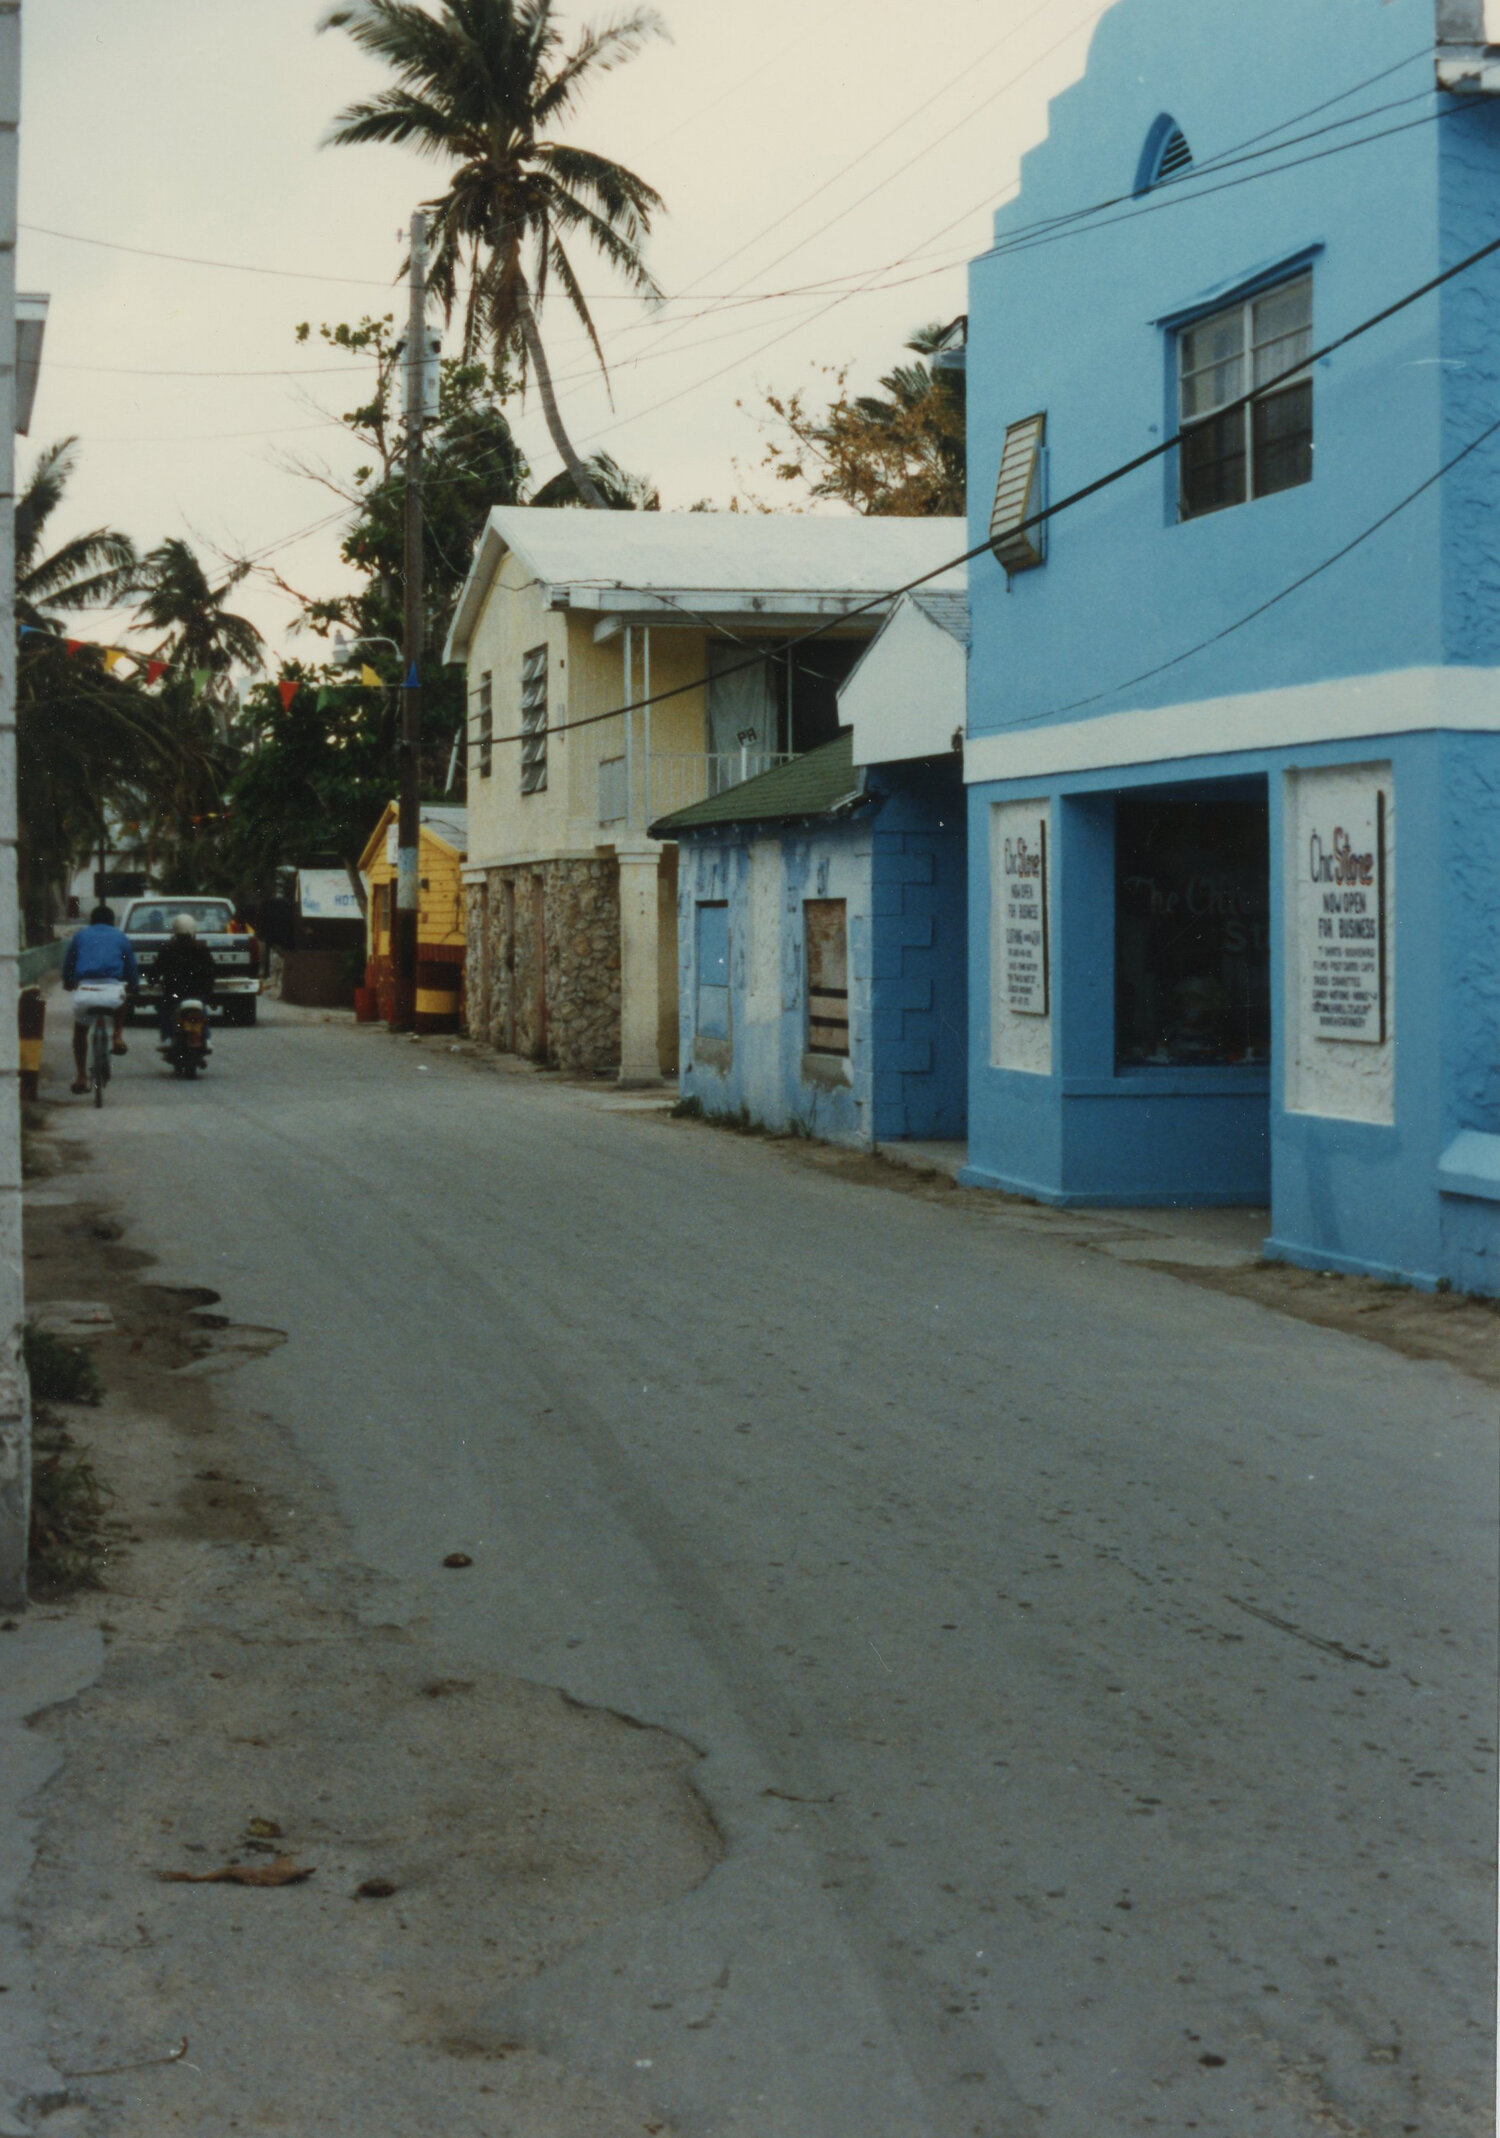 King's Highway - the main drag in Alice Town